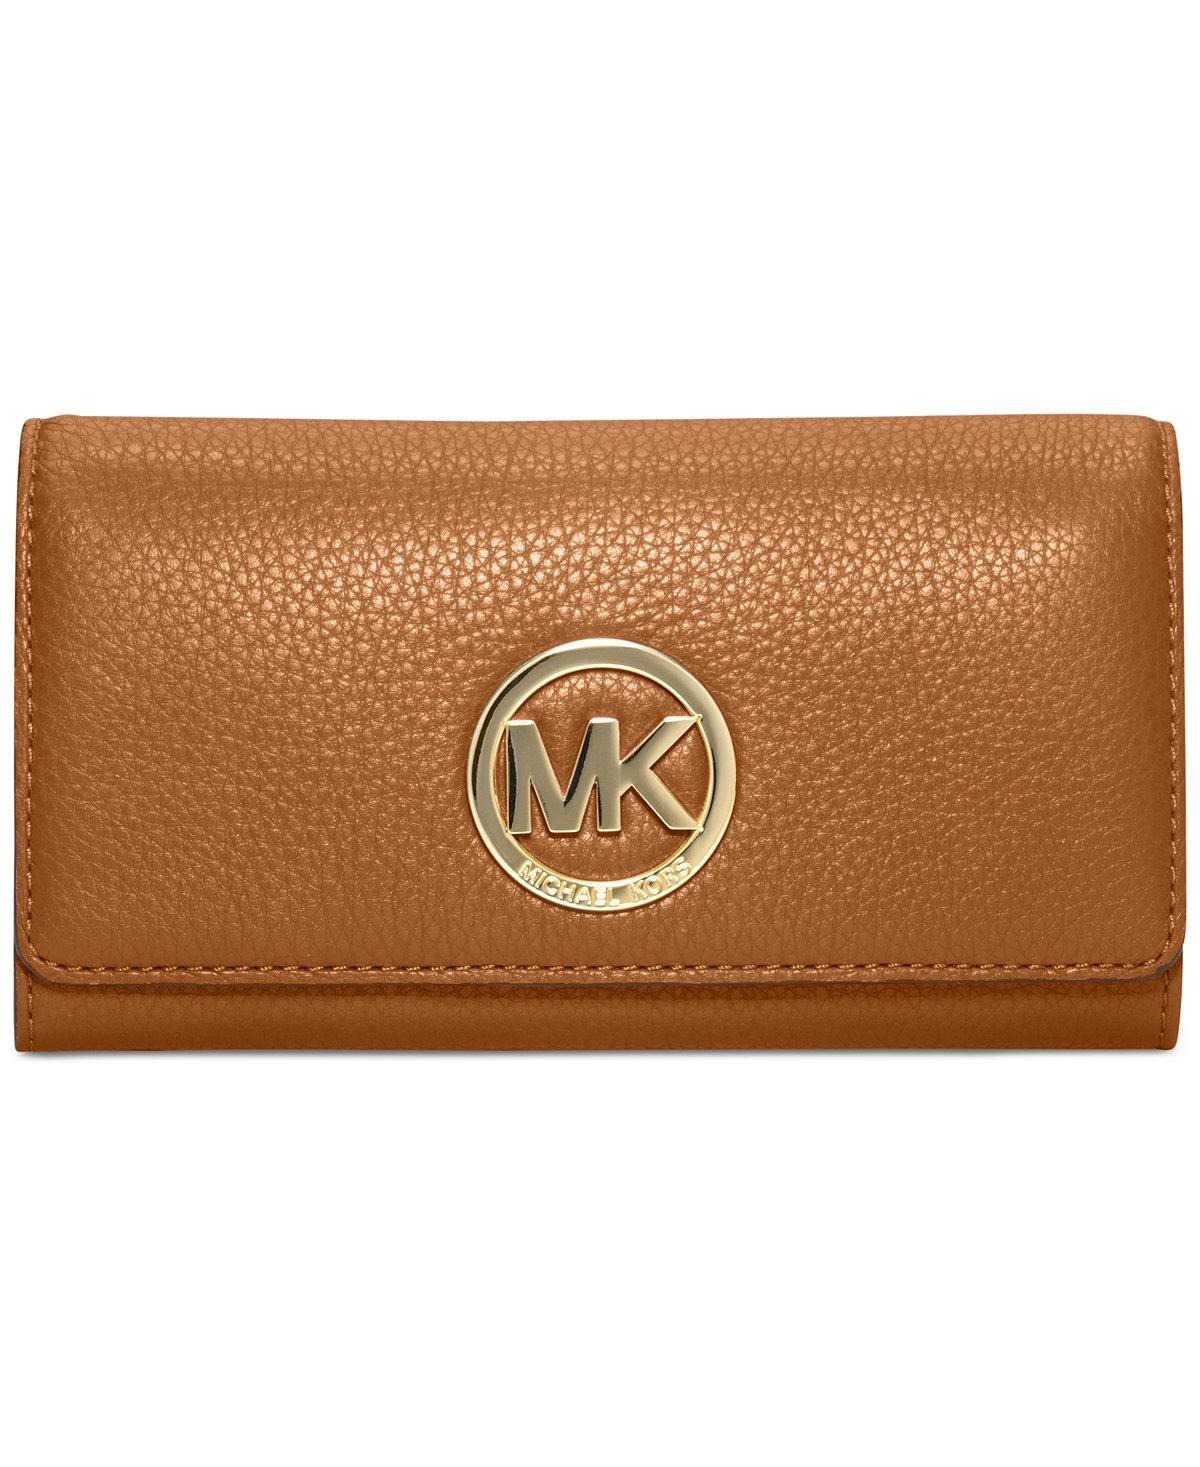 d10f27c65337 purchase michael kors 32f2gfte3l fulton carryall wallet 21bf3 1f465